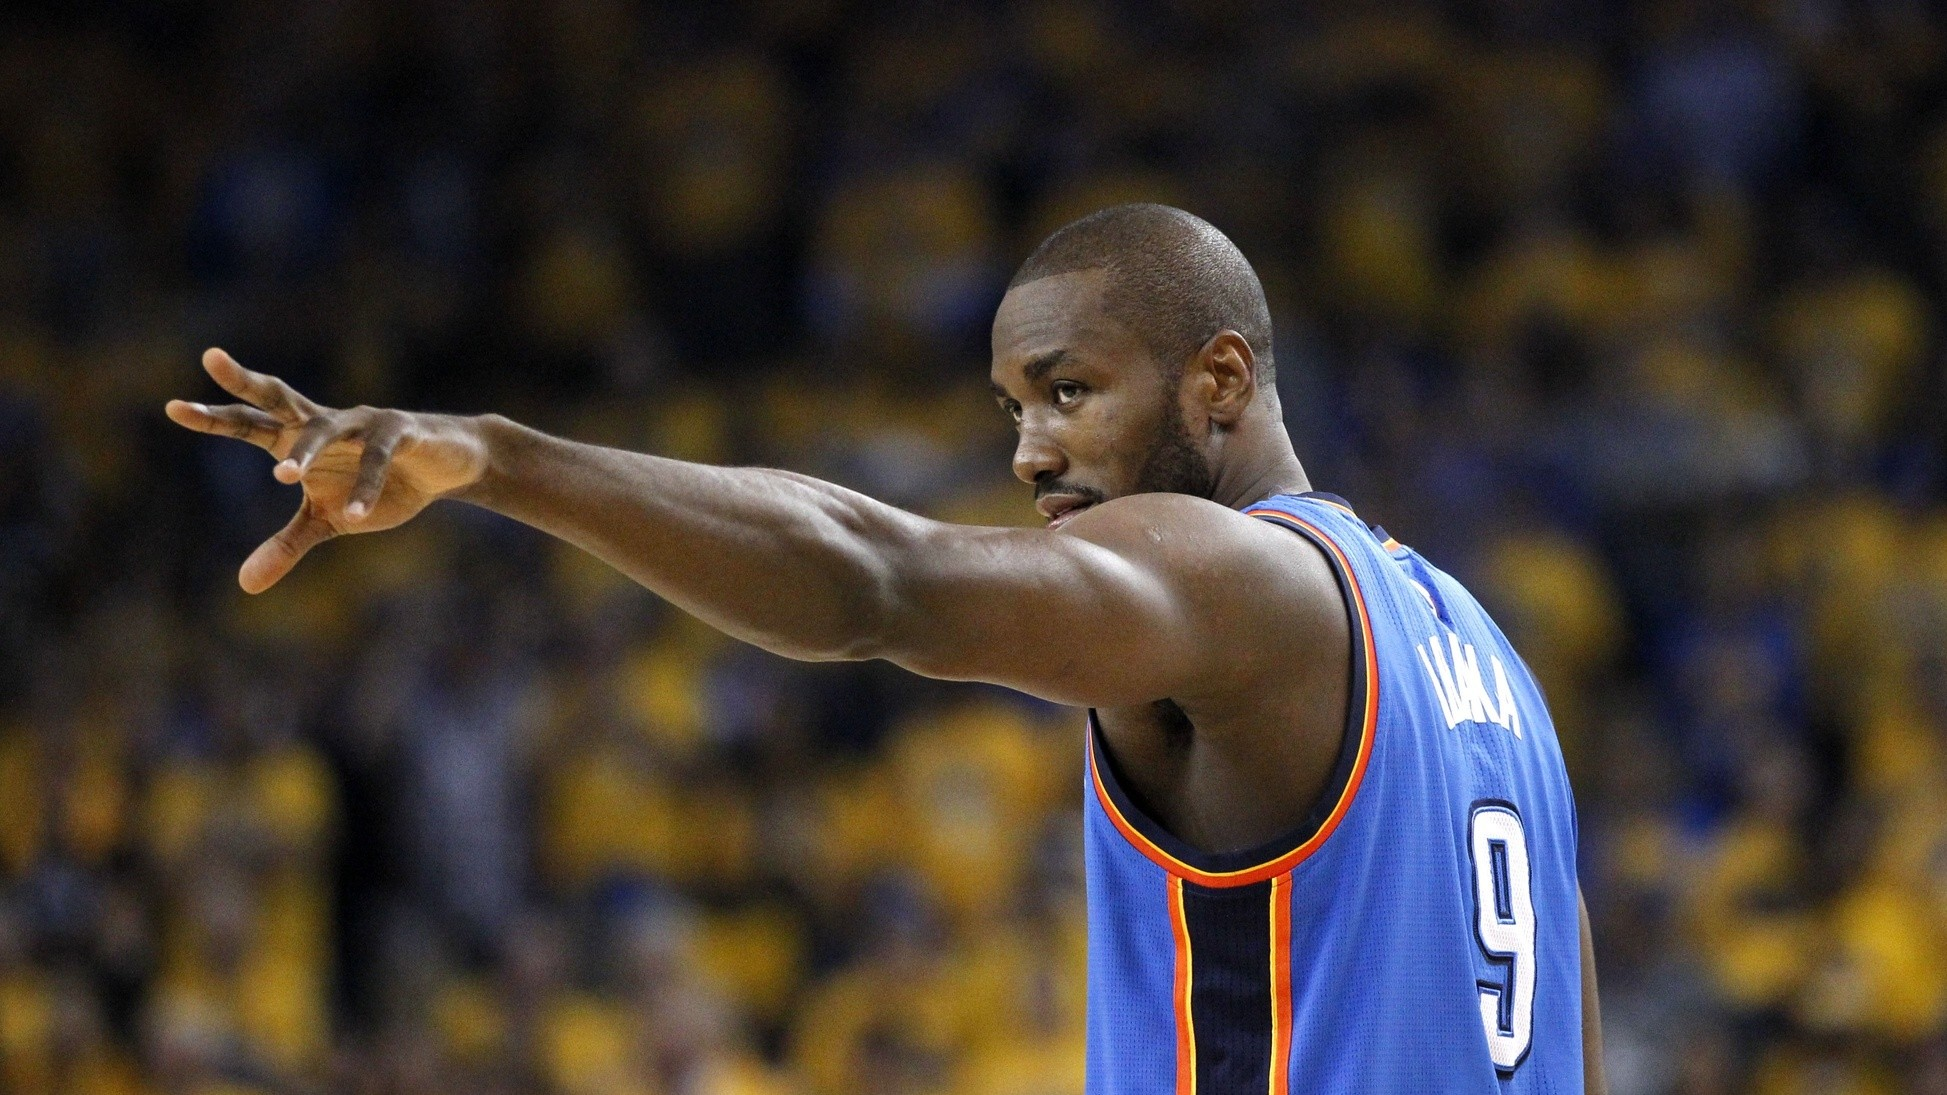 Serge Ibaka and the New OKC: Unpacking the NBA Draft's Biggest Deal